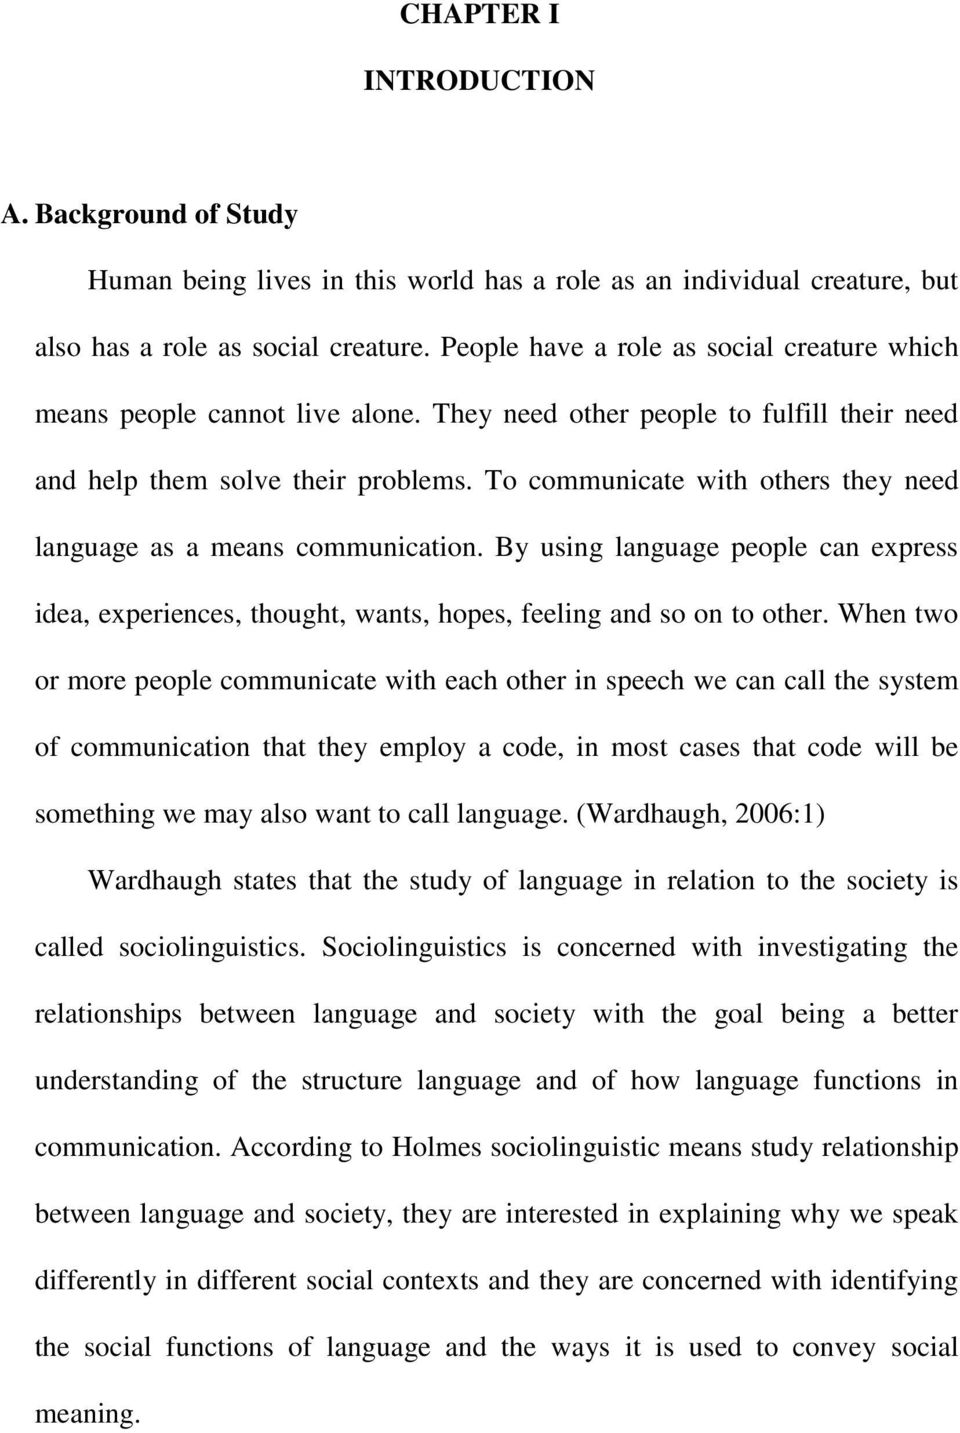 To communicate with others they need language as a means communication. By using language people can express idea, experiences, thought, wants, hopes, feeling and so on to other.